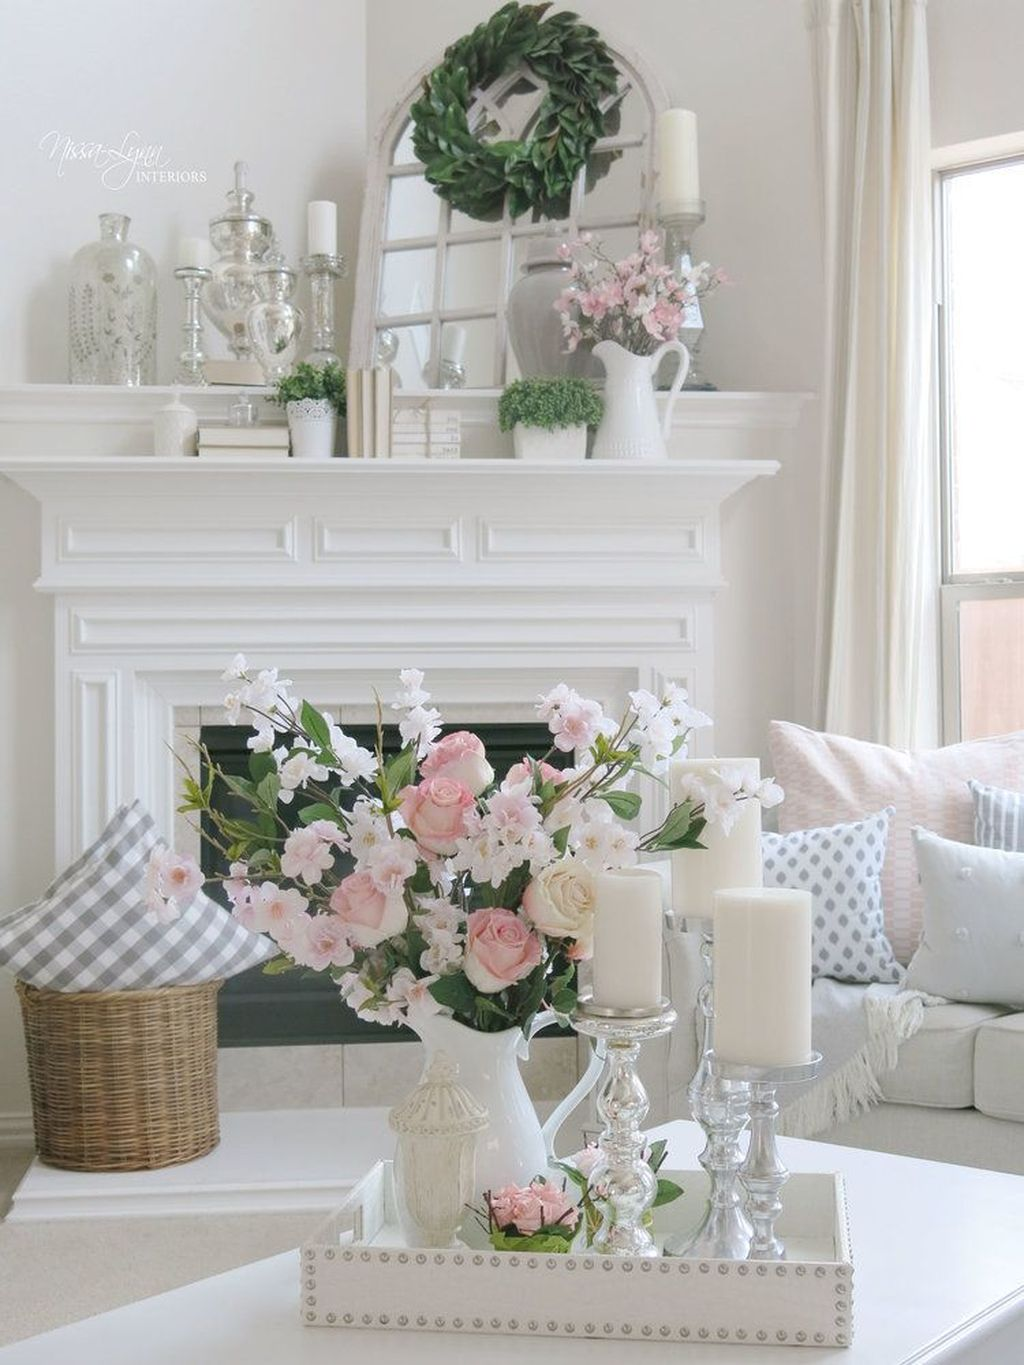 Awesome Spring Interior Decor Ideas That You Should Copy 14